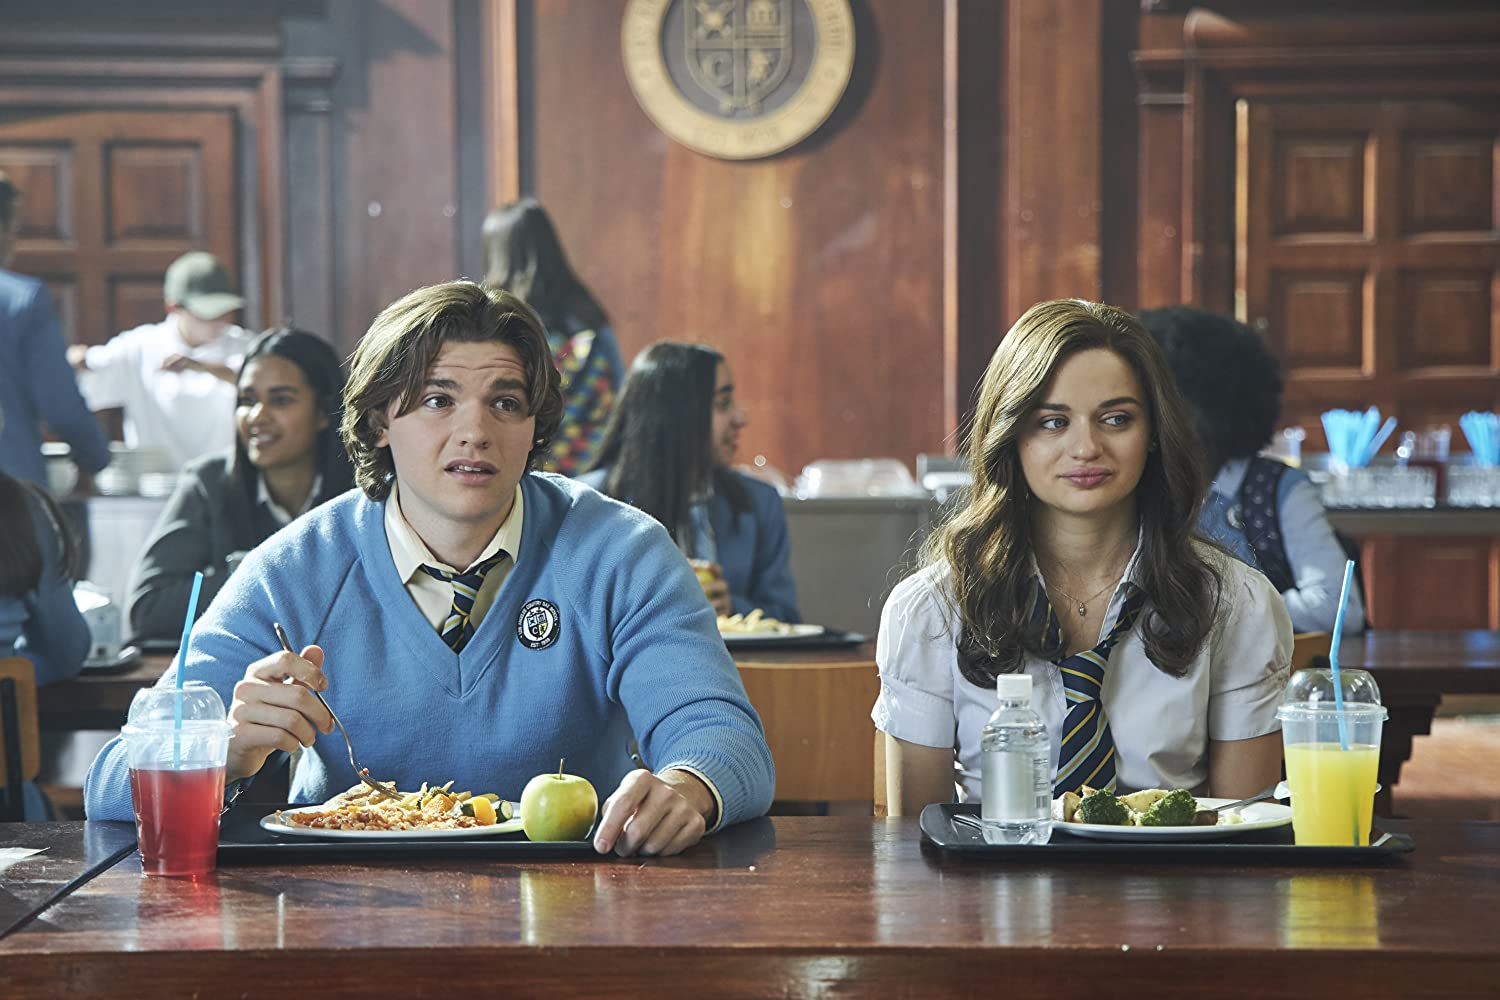 Joey King and Joel Courtney in The Kissing Booth 2 (2020)